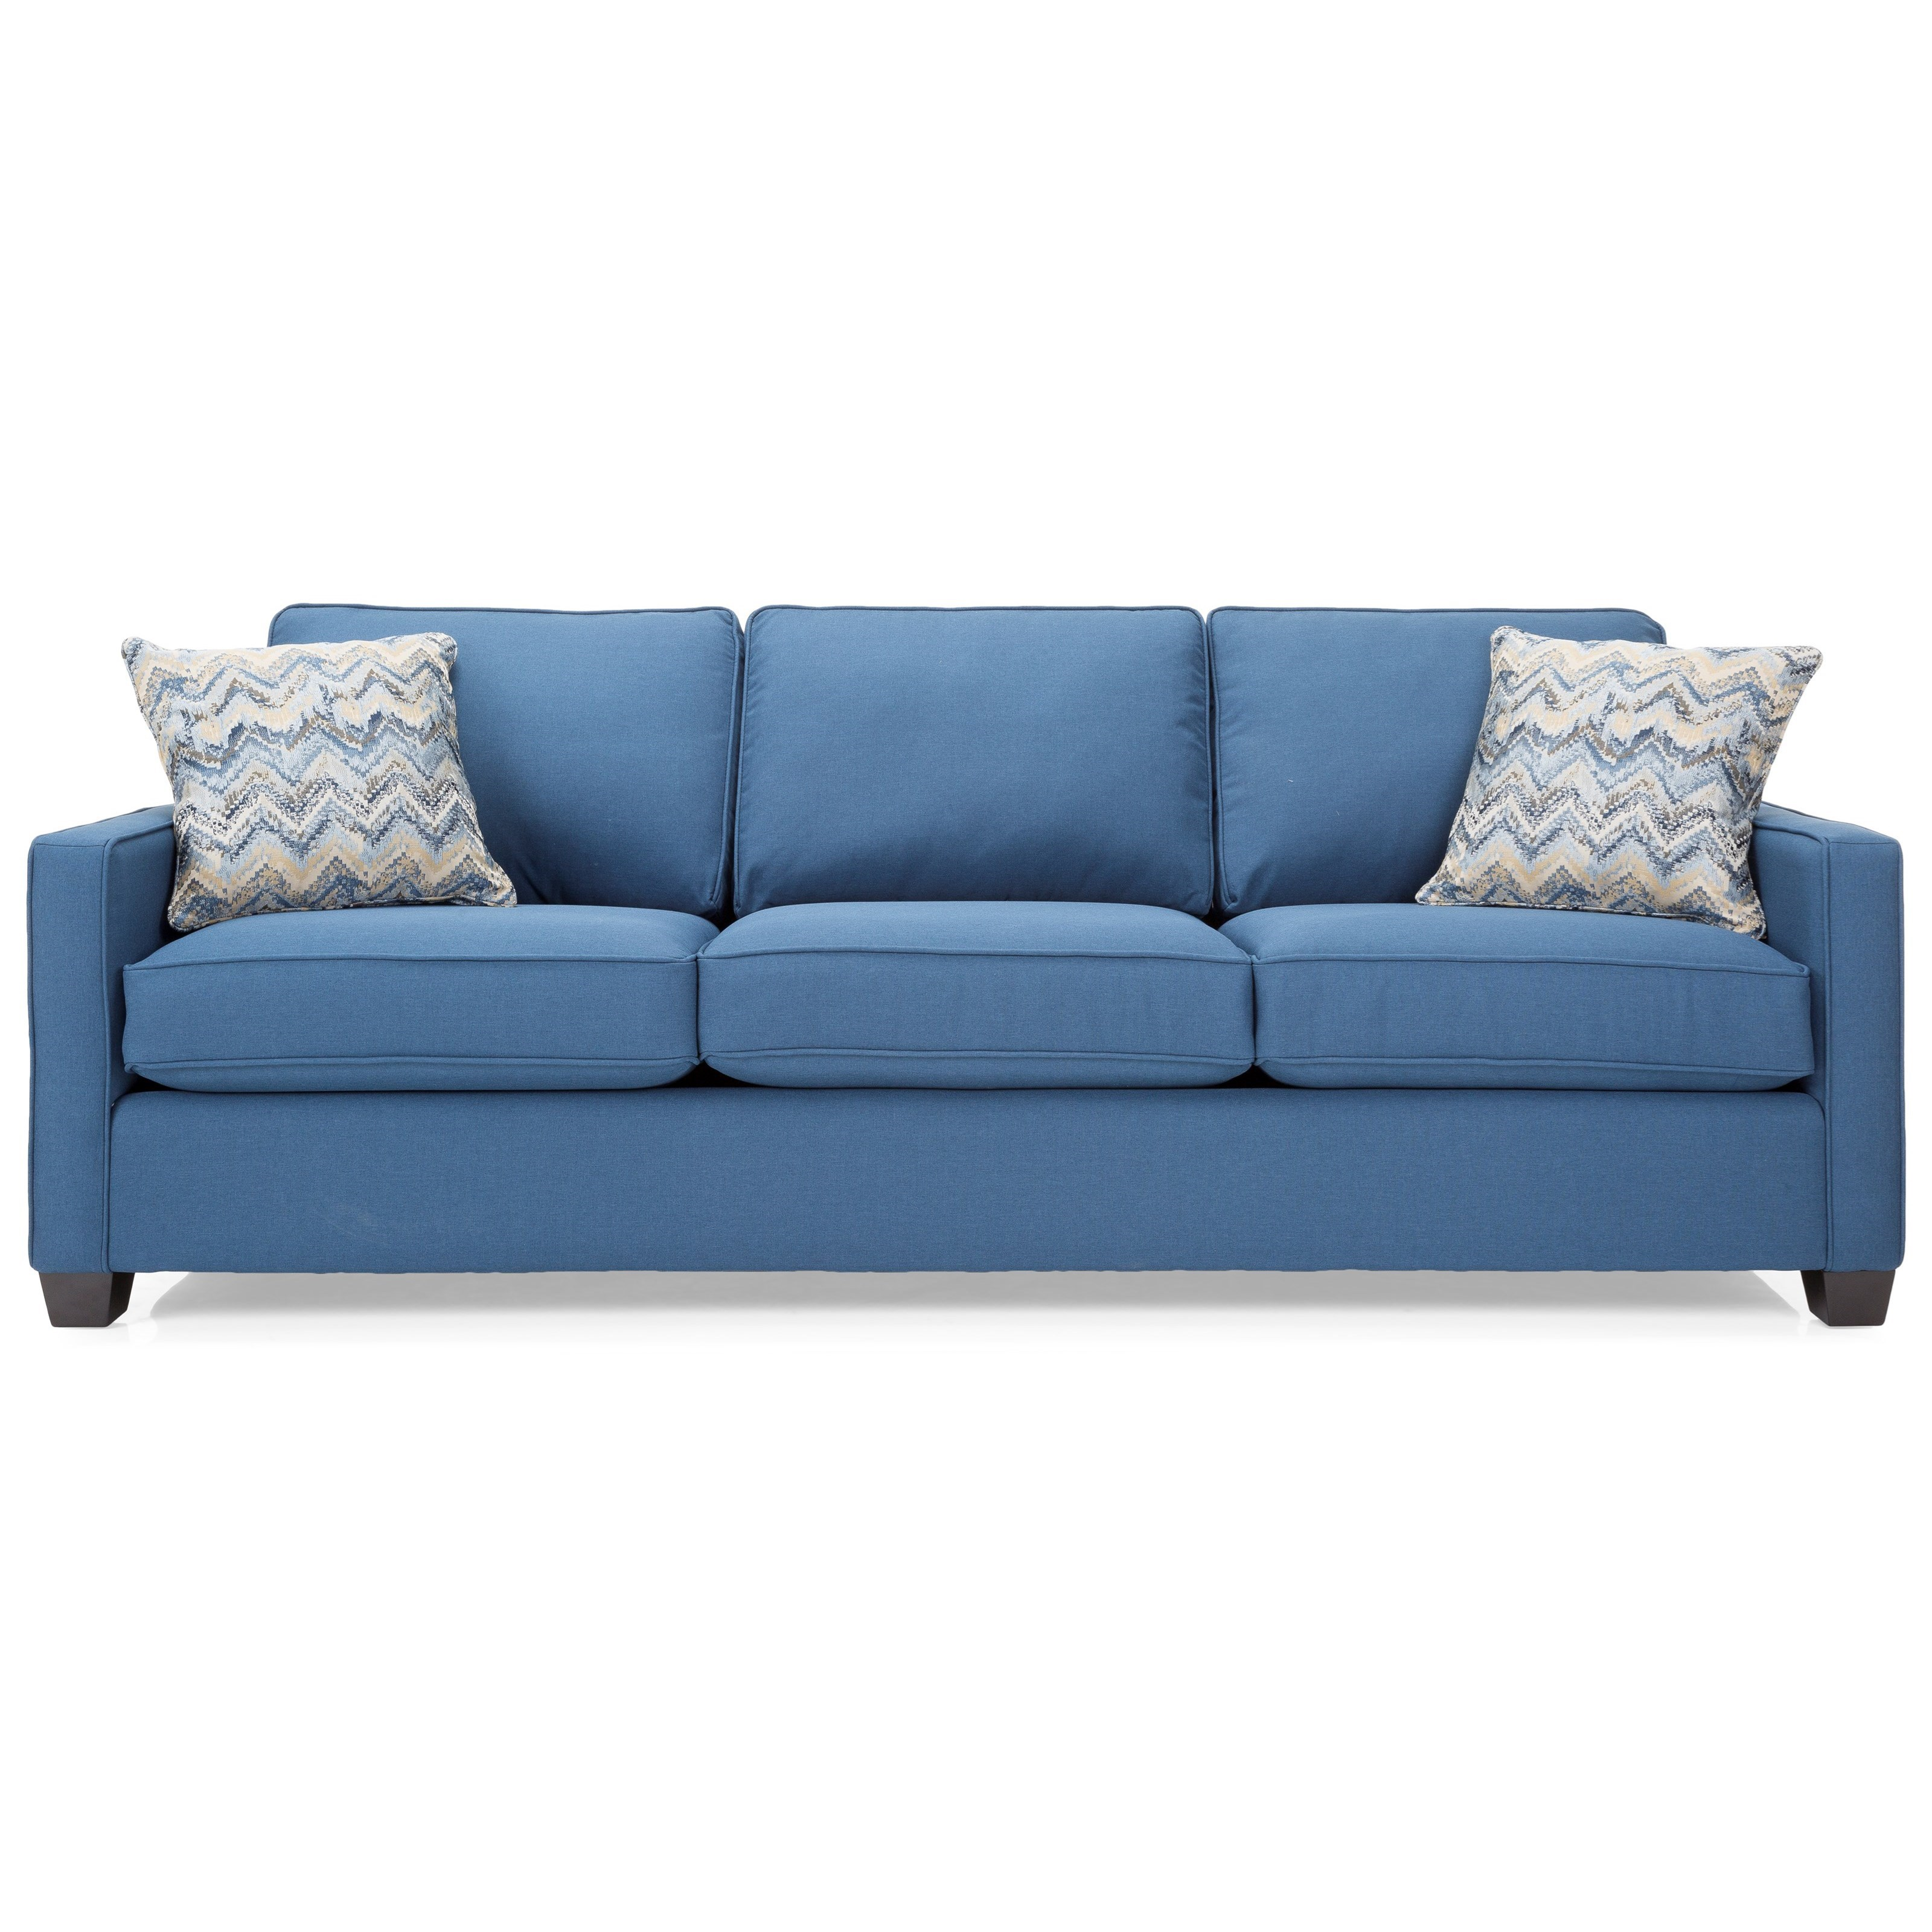 Lara Sofa by Taelor Designs at Bennett's Furniture and Mattresses